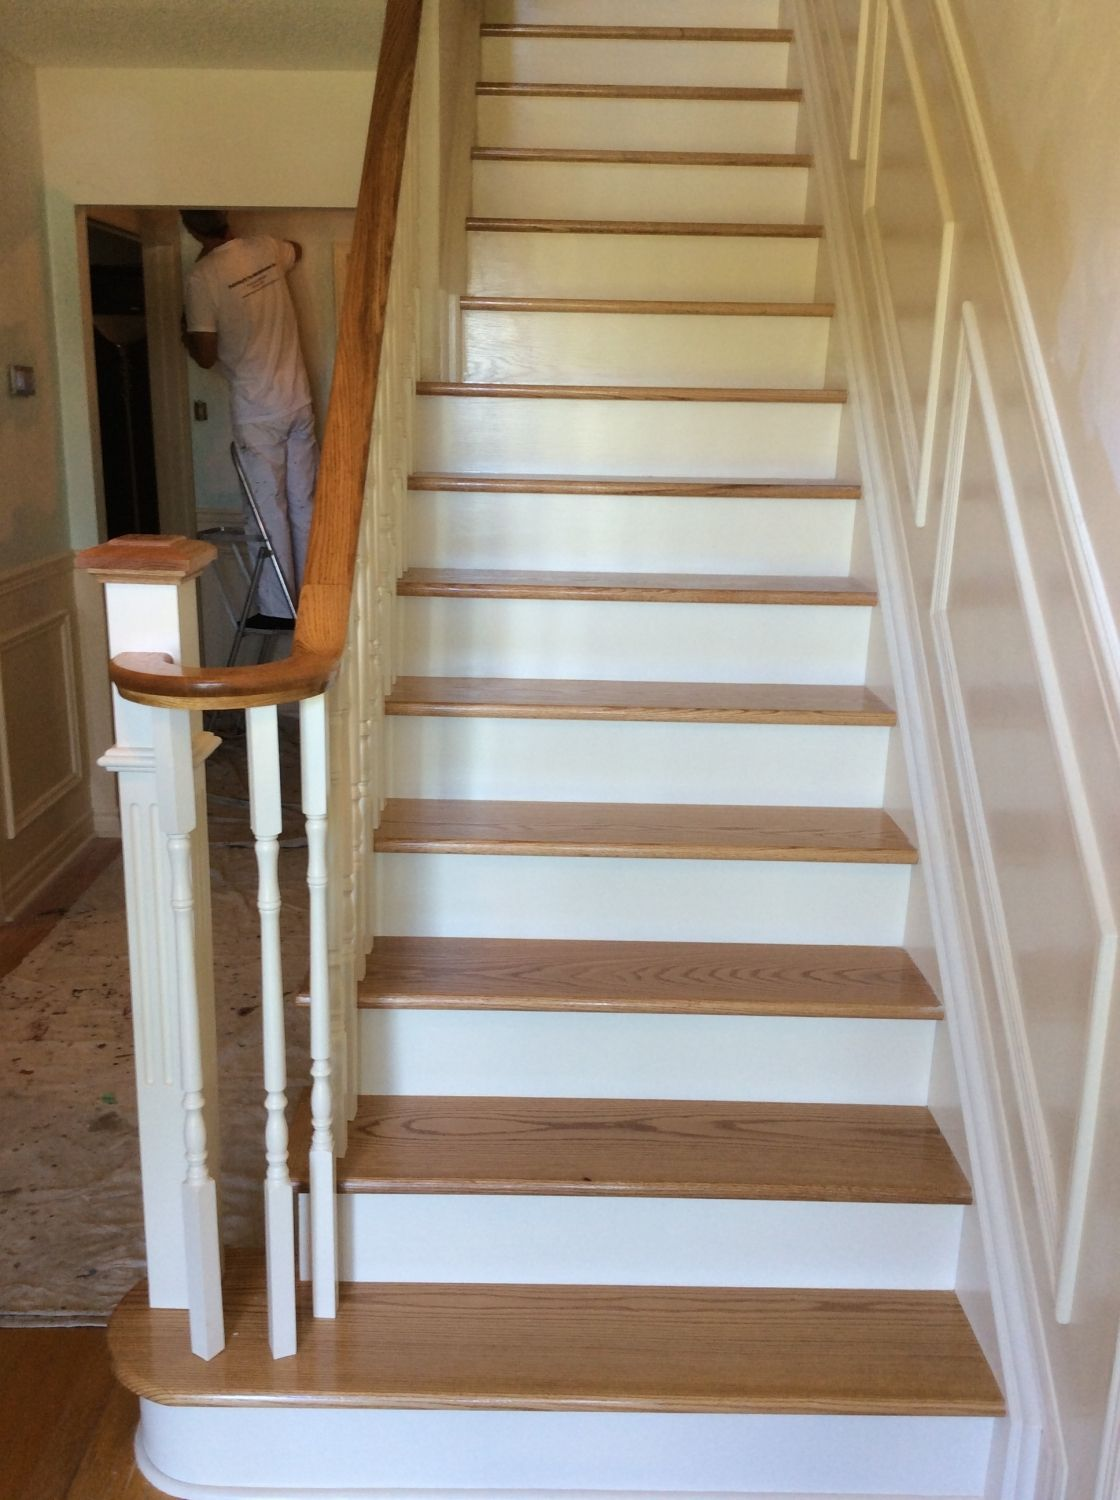 This oak staircase is straight (twotone natural oak